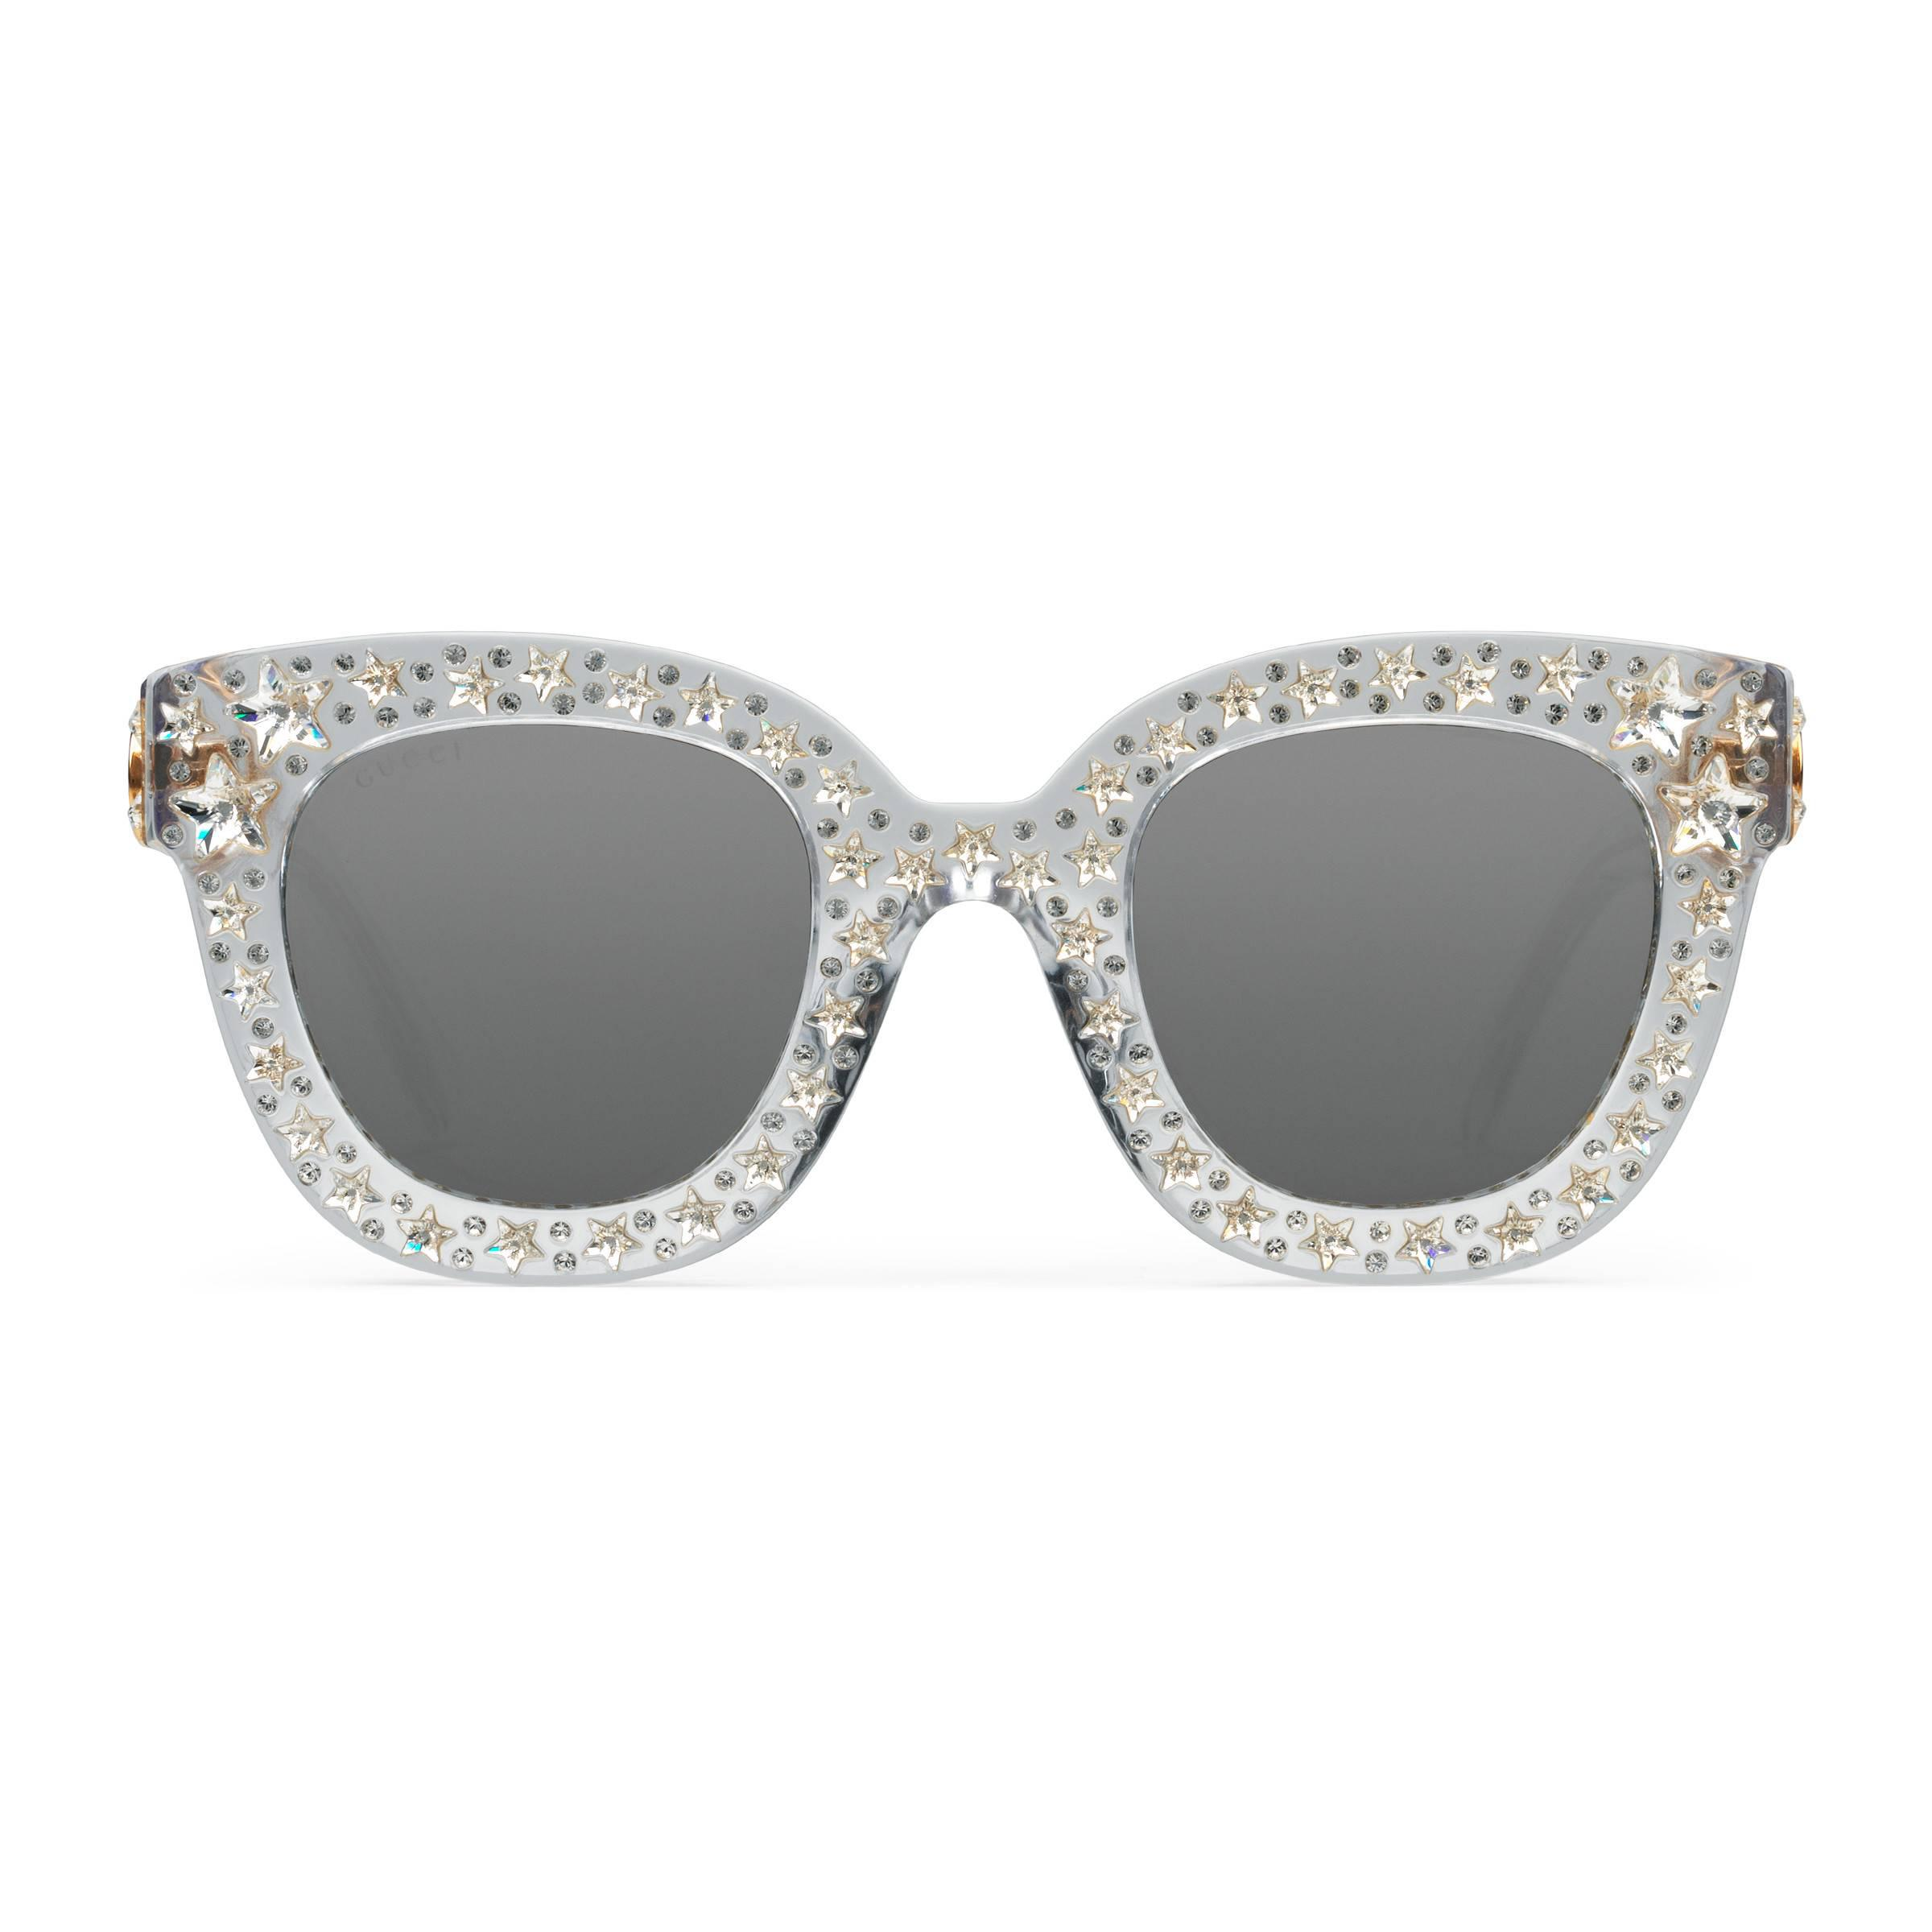 9940af755014f4 Gucci Cat Eye Acetate Sunglasses With Stars in Gray - Lyst